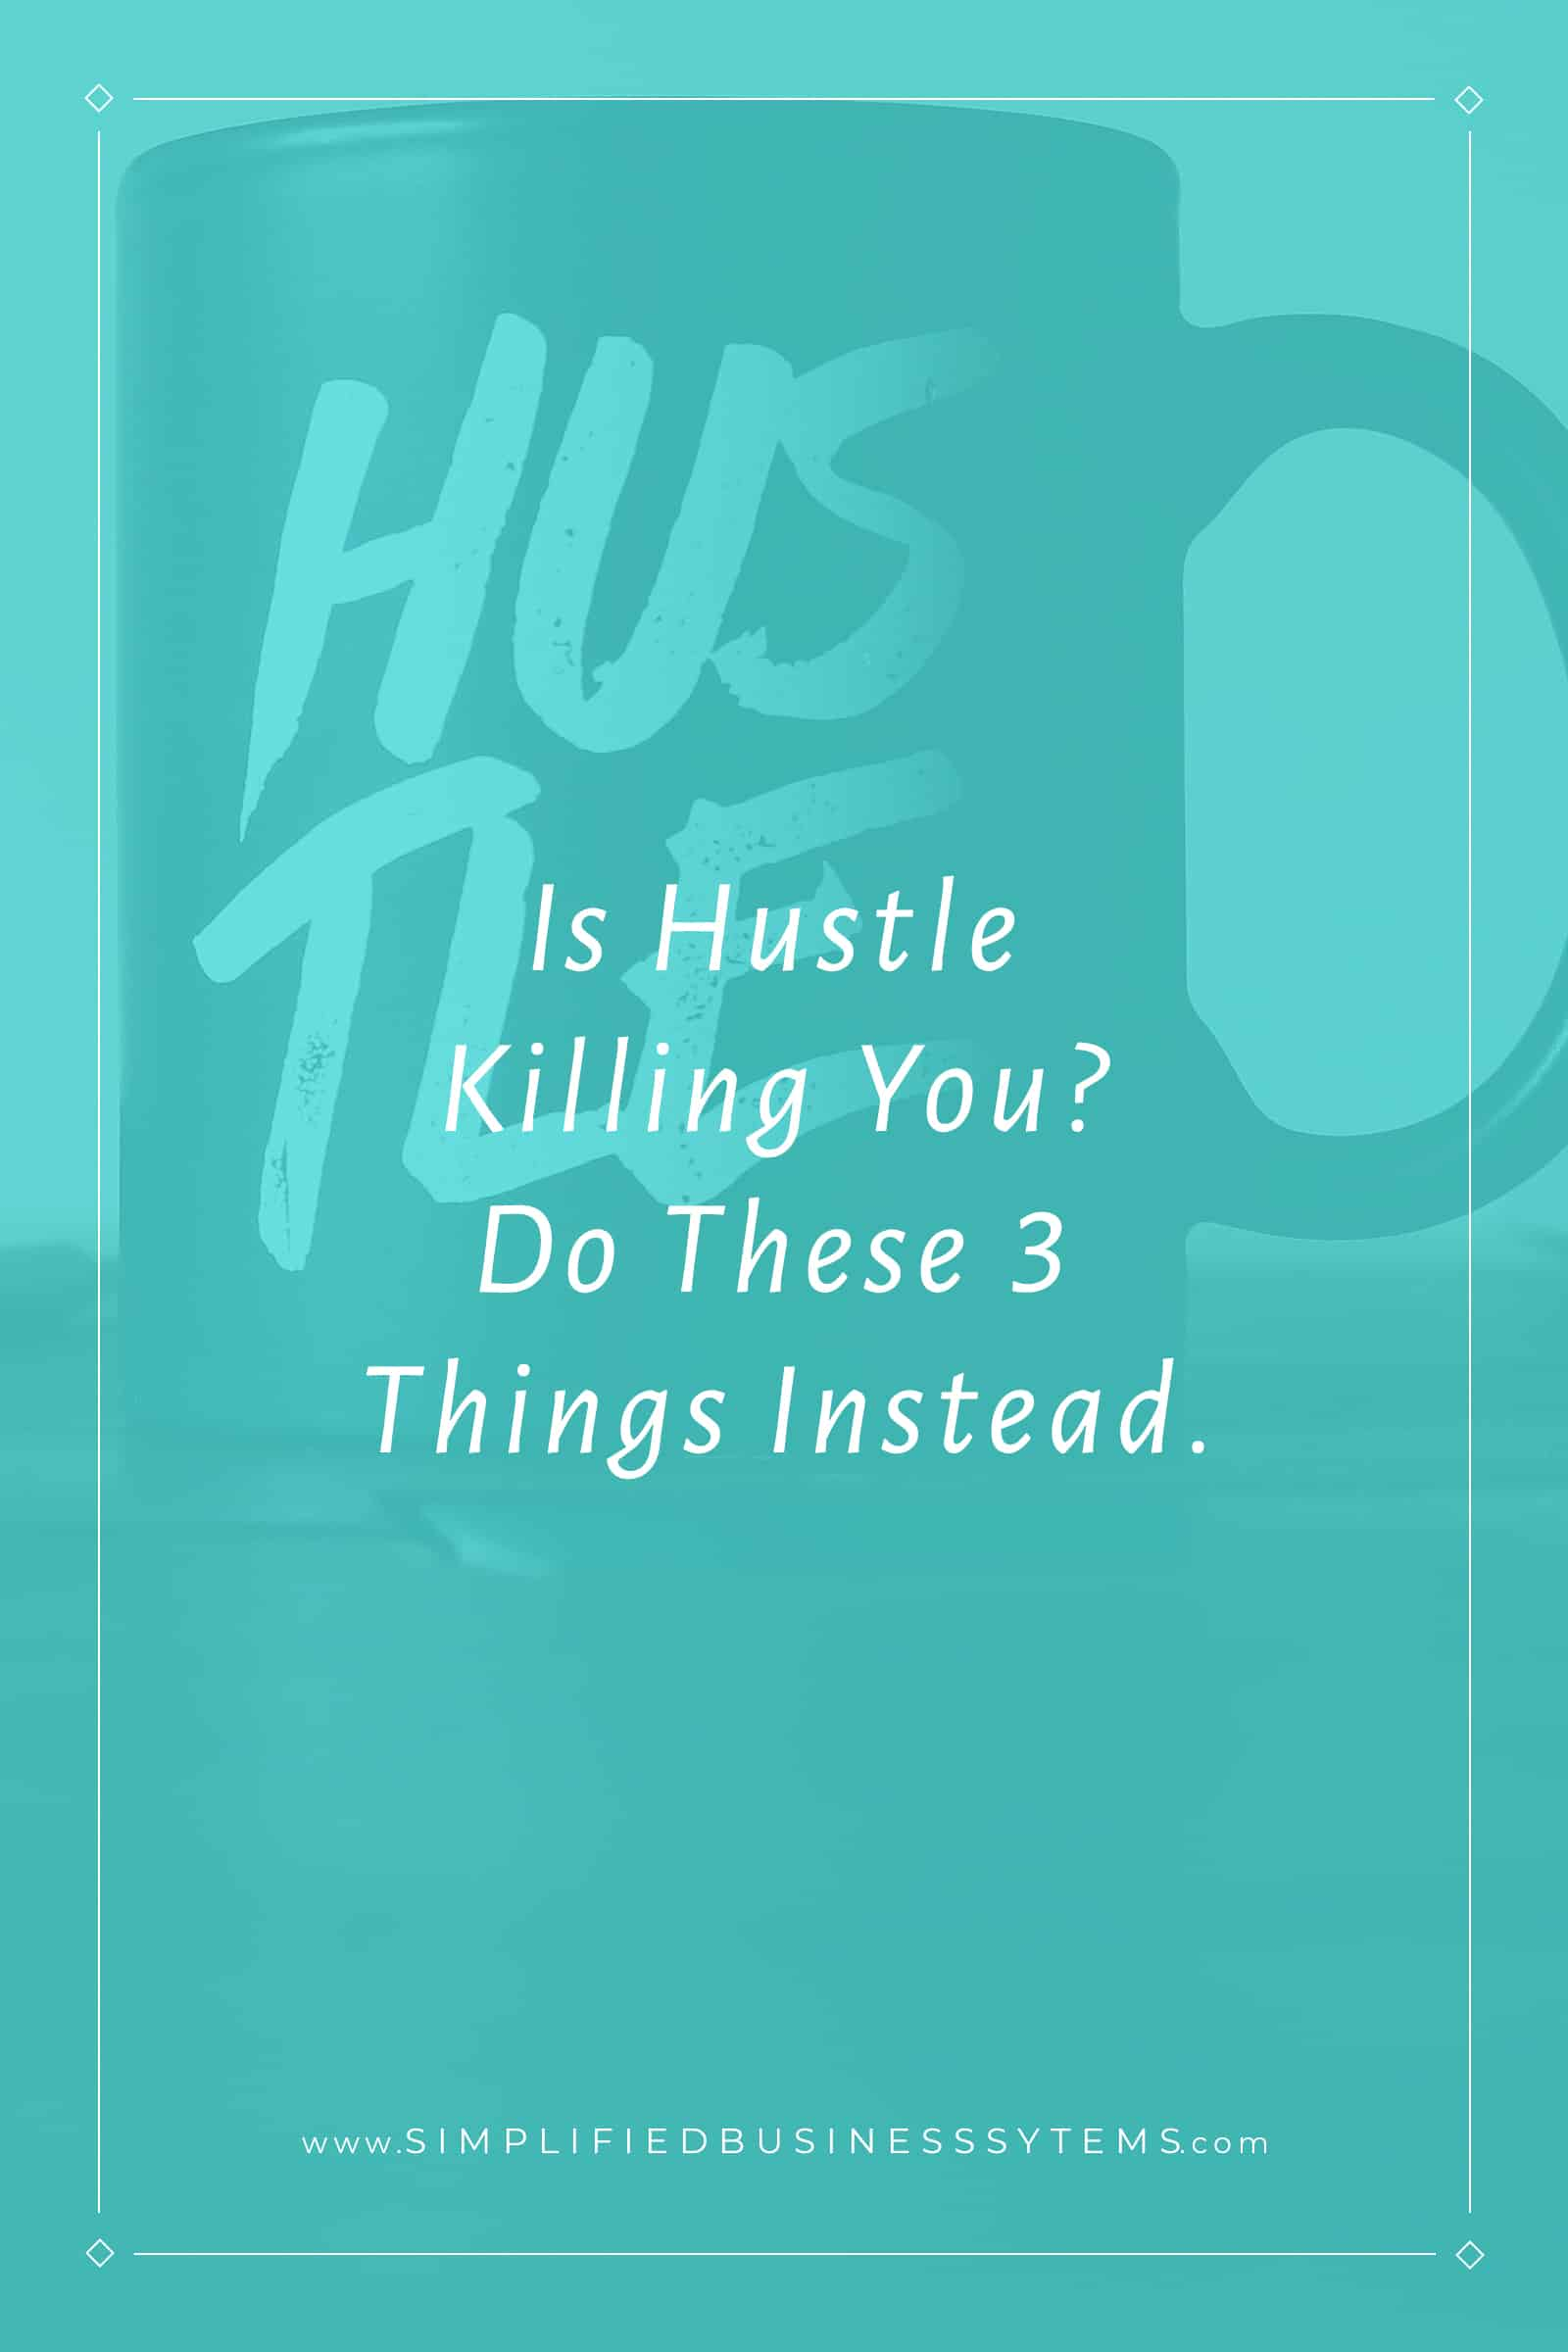 Is Hustle Killing You? Do These 3 Things Instead.